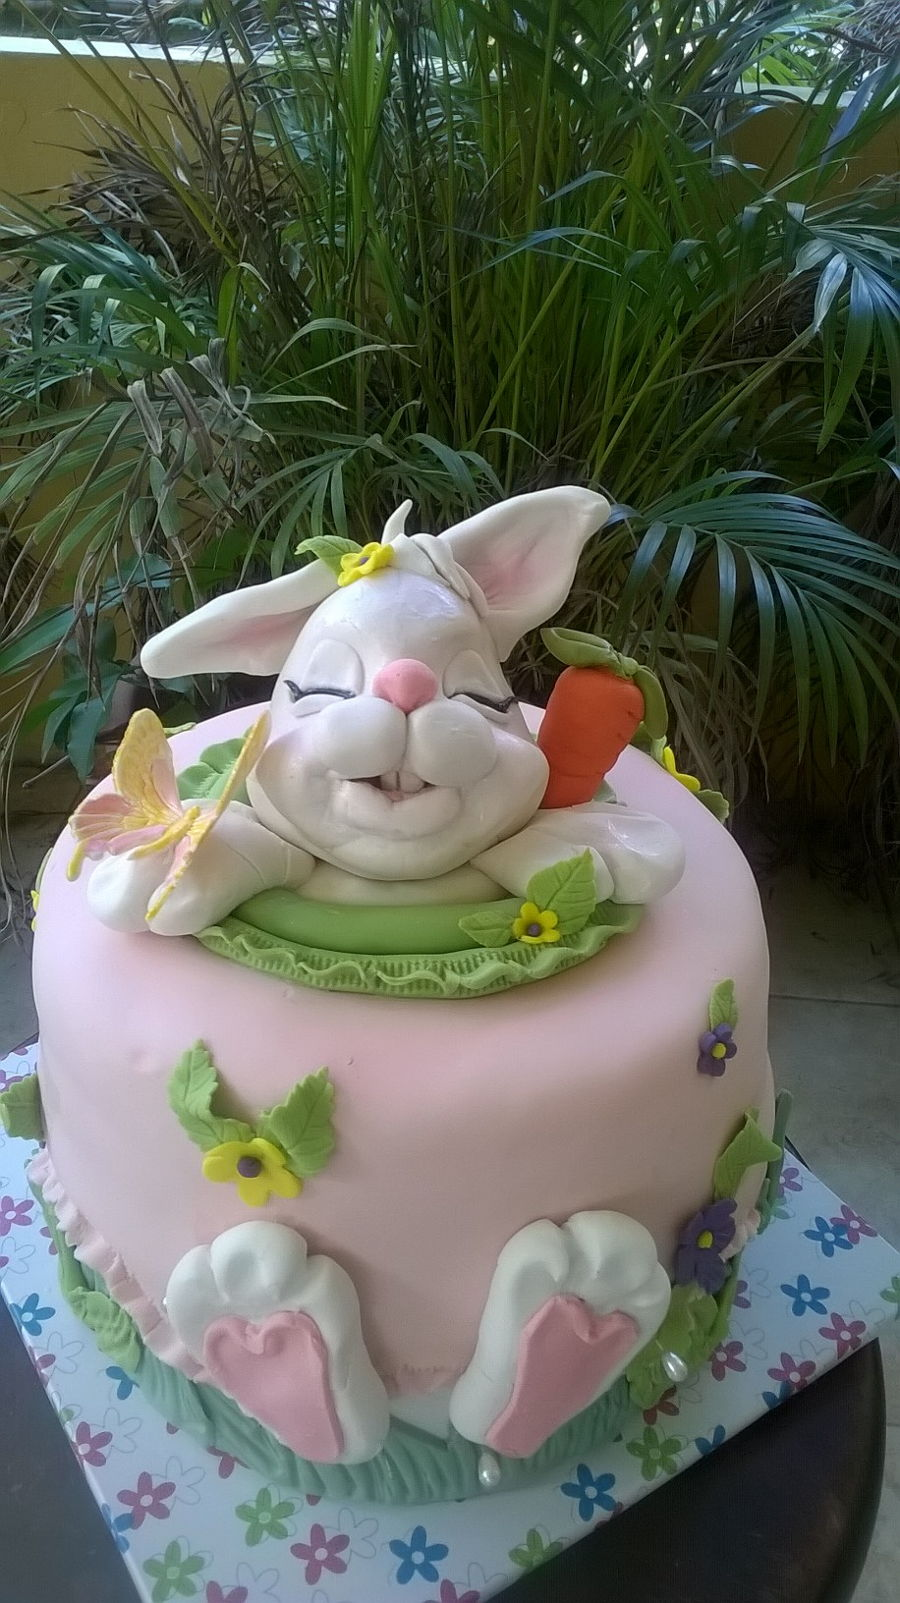 Easter Cake Icing Ideas : Easter Bunny Cake - CakeCentral.com